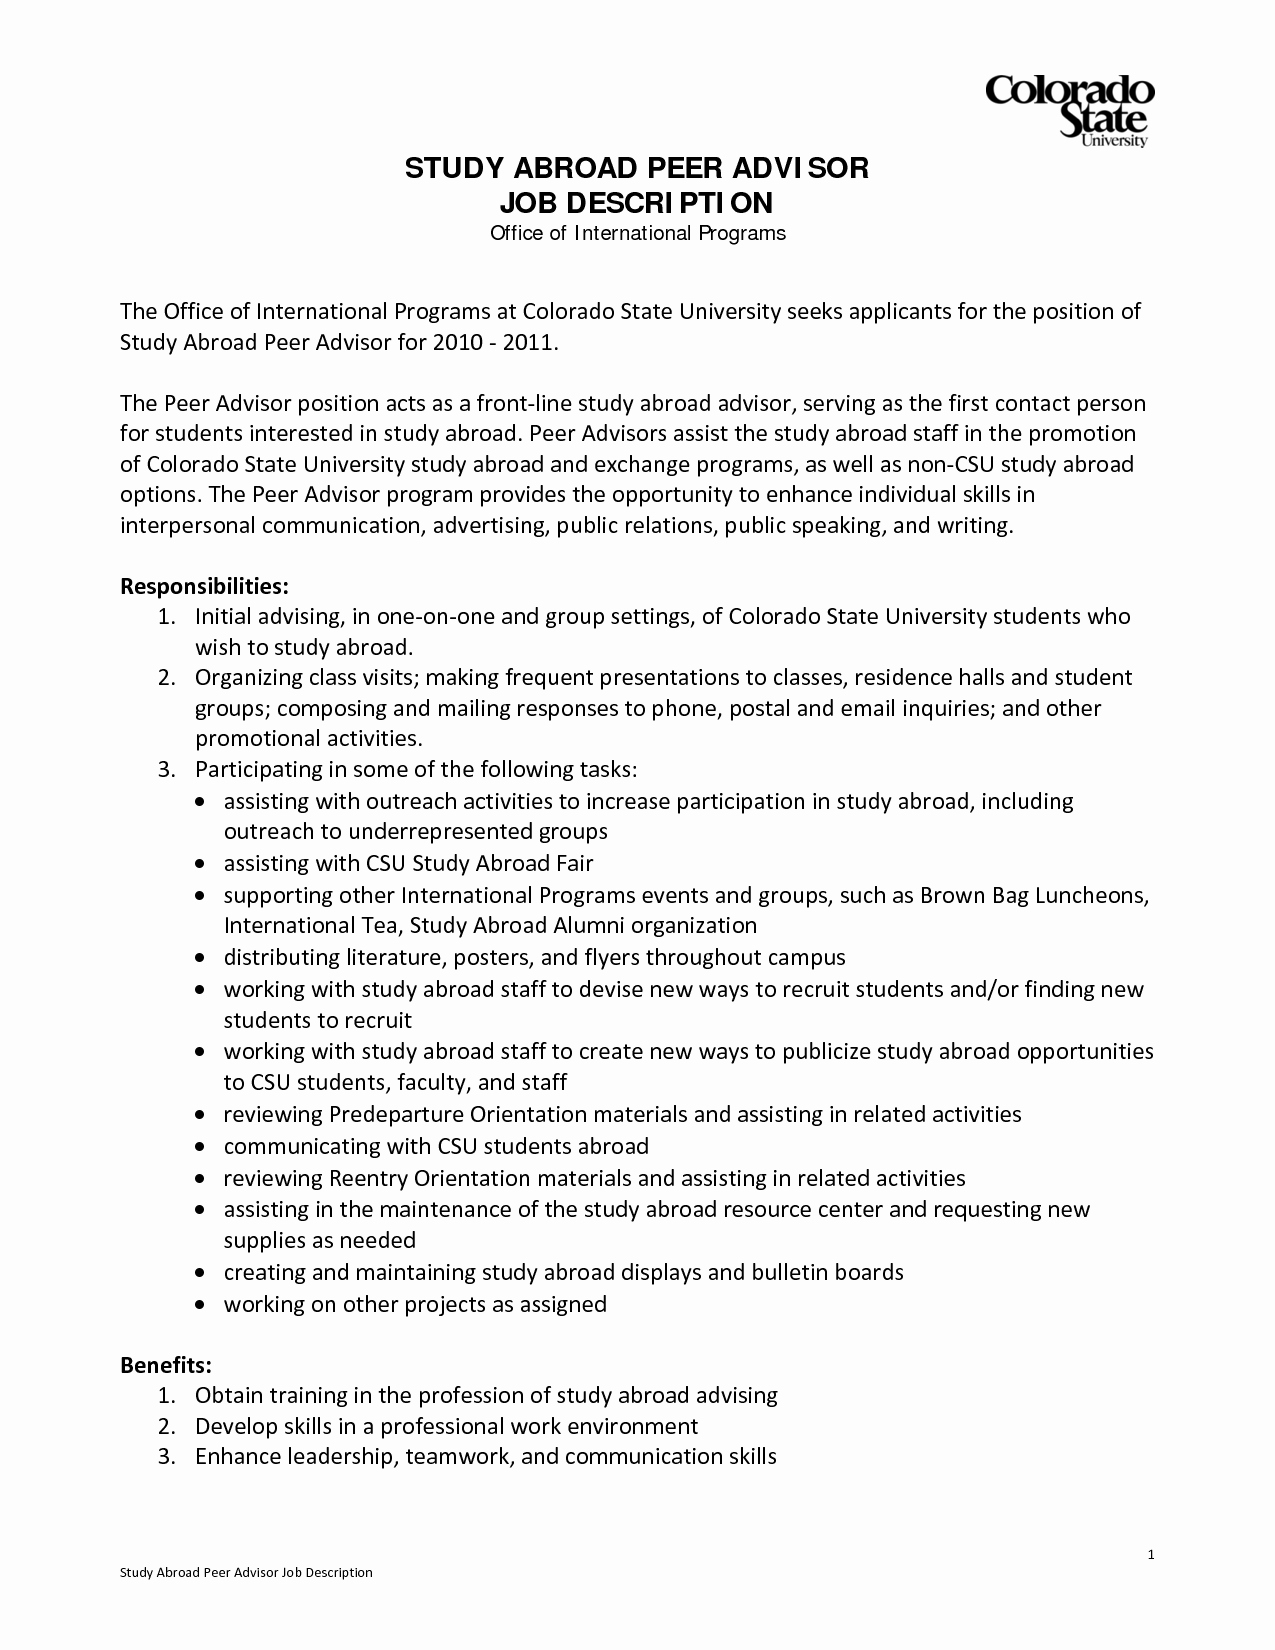 Study Abroad Recommendation Letter Beautiful Example Resume Study Abroad Coordinator Bongdaao